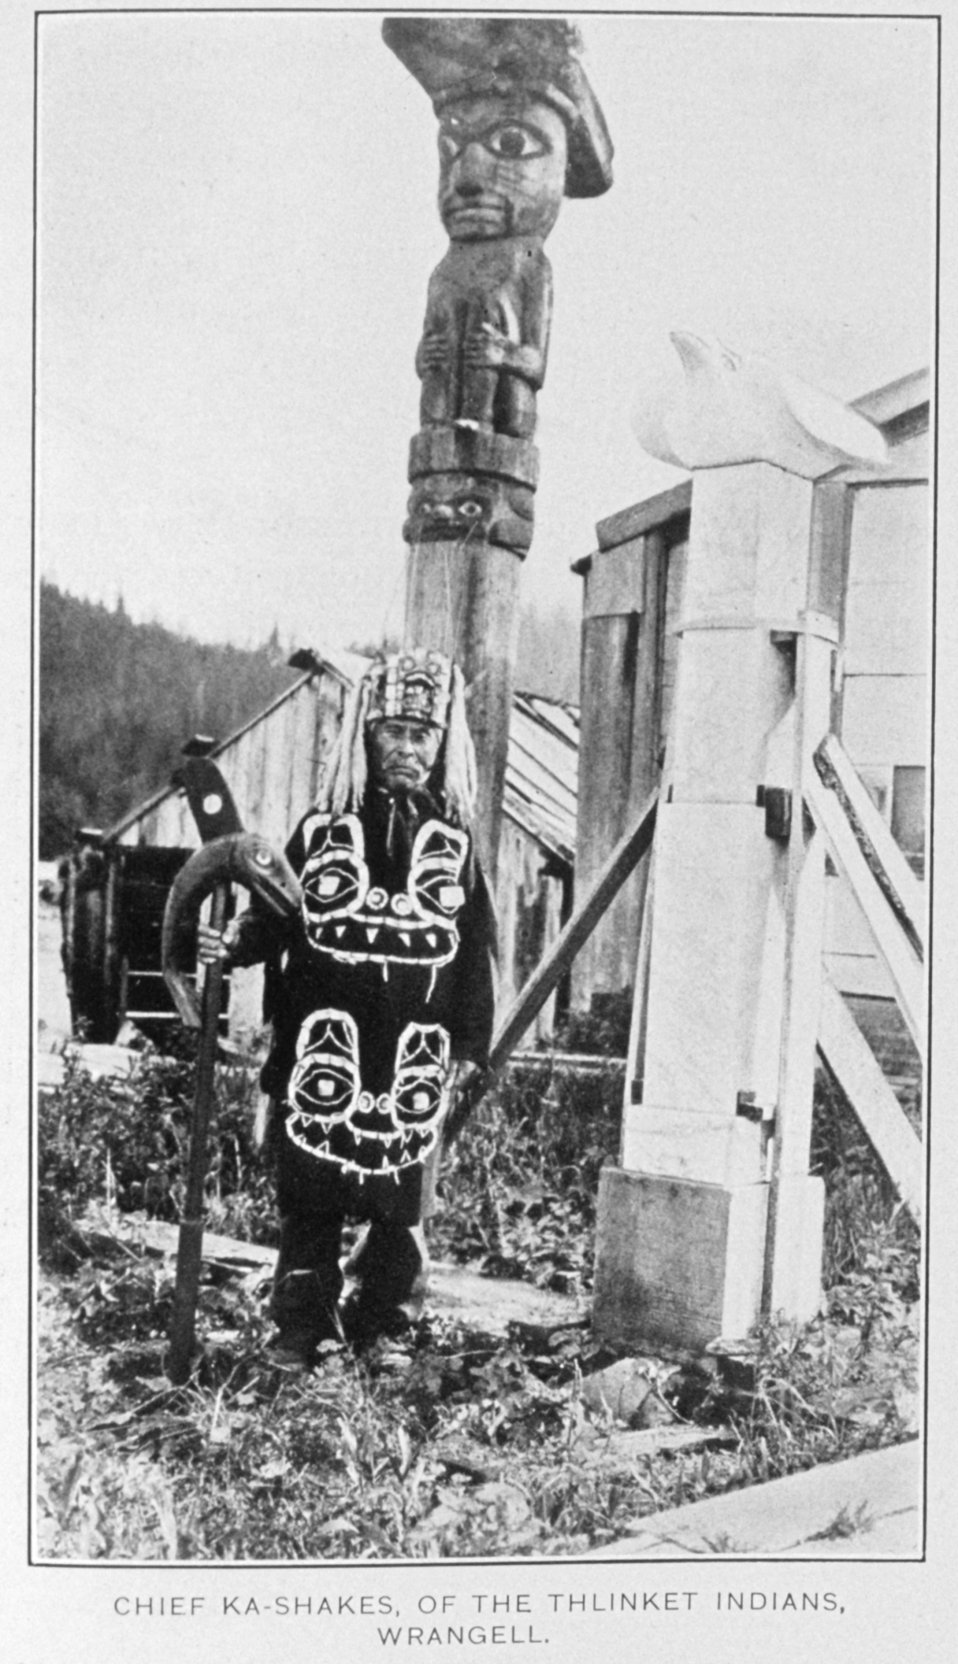 Chief Ka-Shakes of the Thlinket Indians, Wrangell.  In: 'Report of Alaska Investigations,' by E. Lester Jones, p. 102, 1914.  Department  of Commerce, Bureau of Fisheries.  Library Call No. 639: 945 J77.